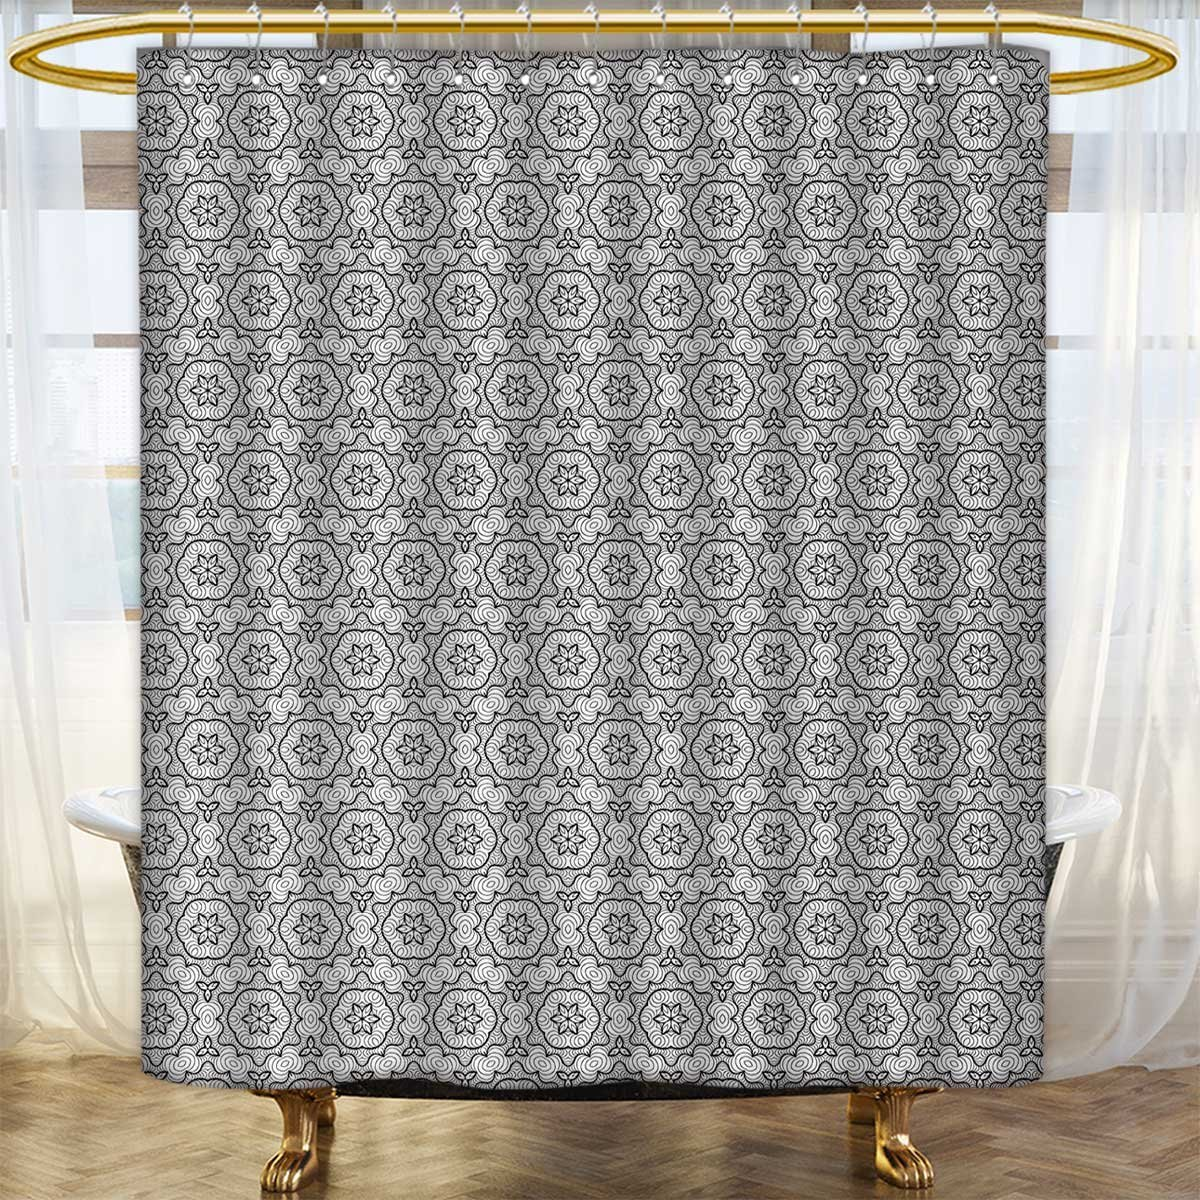 color10 54 x 84 (inch) color10 54 x 84 (inch) Anhounine Black and White Shower Curtains Mildew Resistant Abstract and Artistic Mandala Style Floral Symmetrical Simple Motifs Tile Bathroom Decor Sets with Hooks 54 x84  Black White